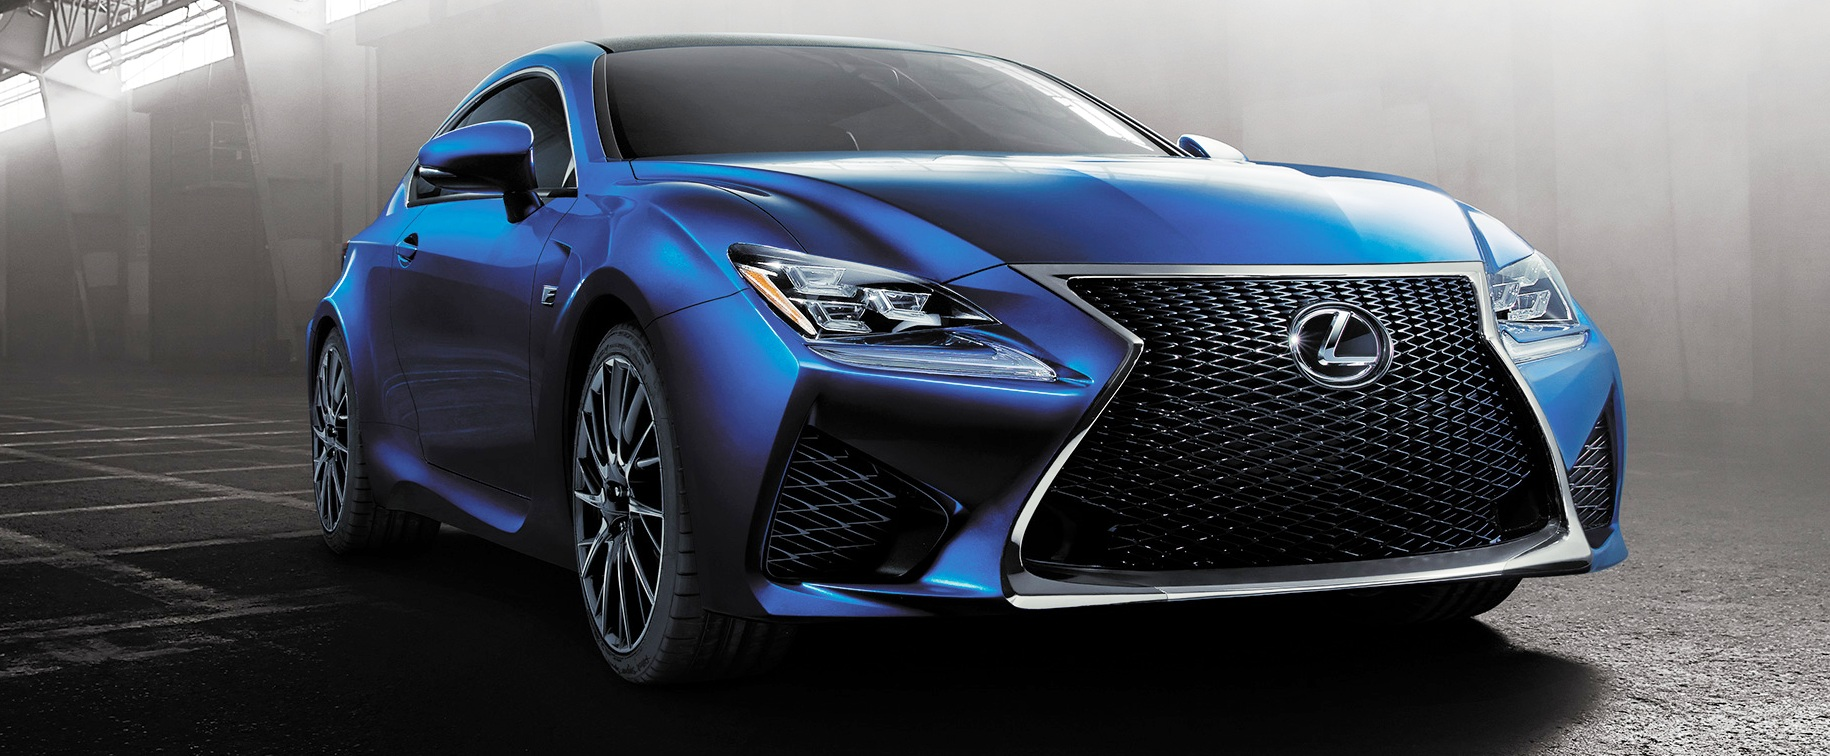 2015 Lexus RC F 0061 400x165 photo